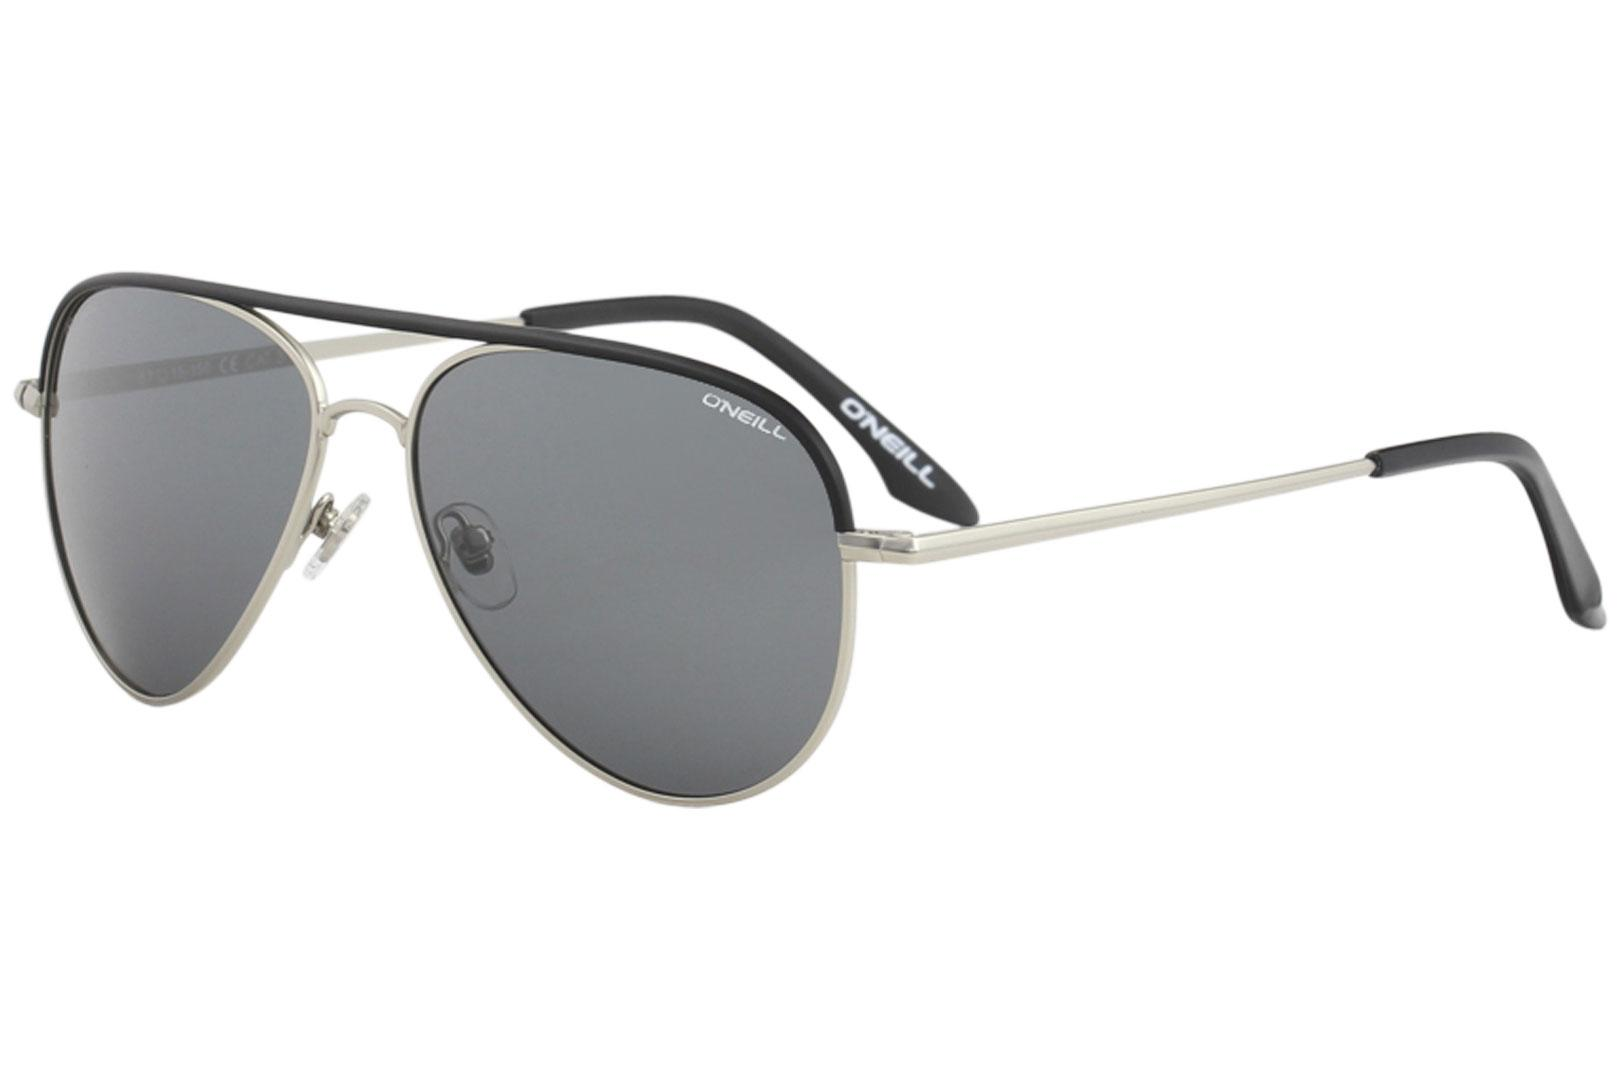 Image of O'Neill Men's Ons Filey Fashion Pilot Sunglasses - Black Silver/Grey Polarized   002 P - Lens 57 Bridge 15 Temple 150mm